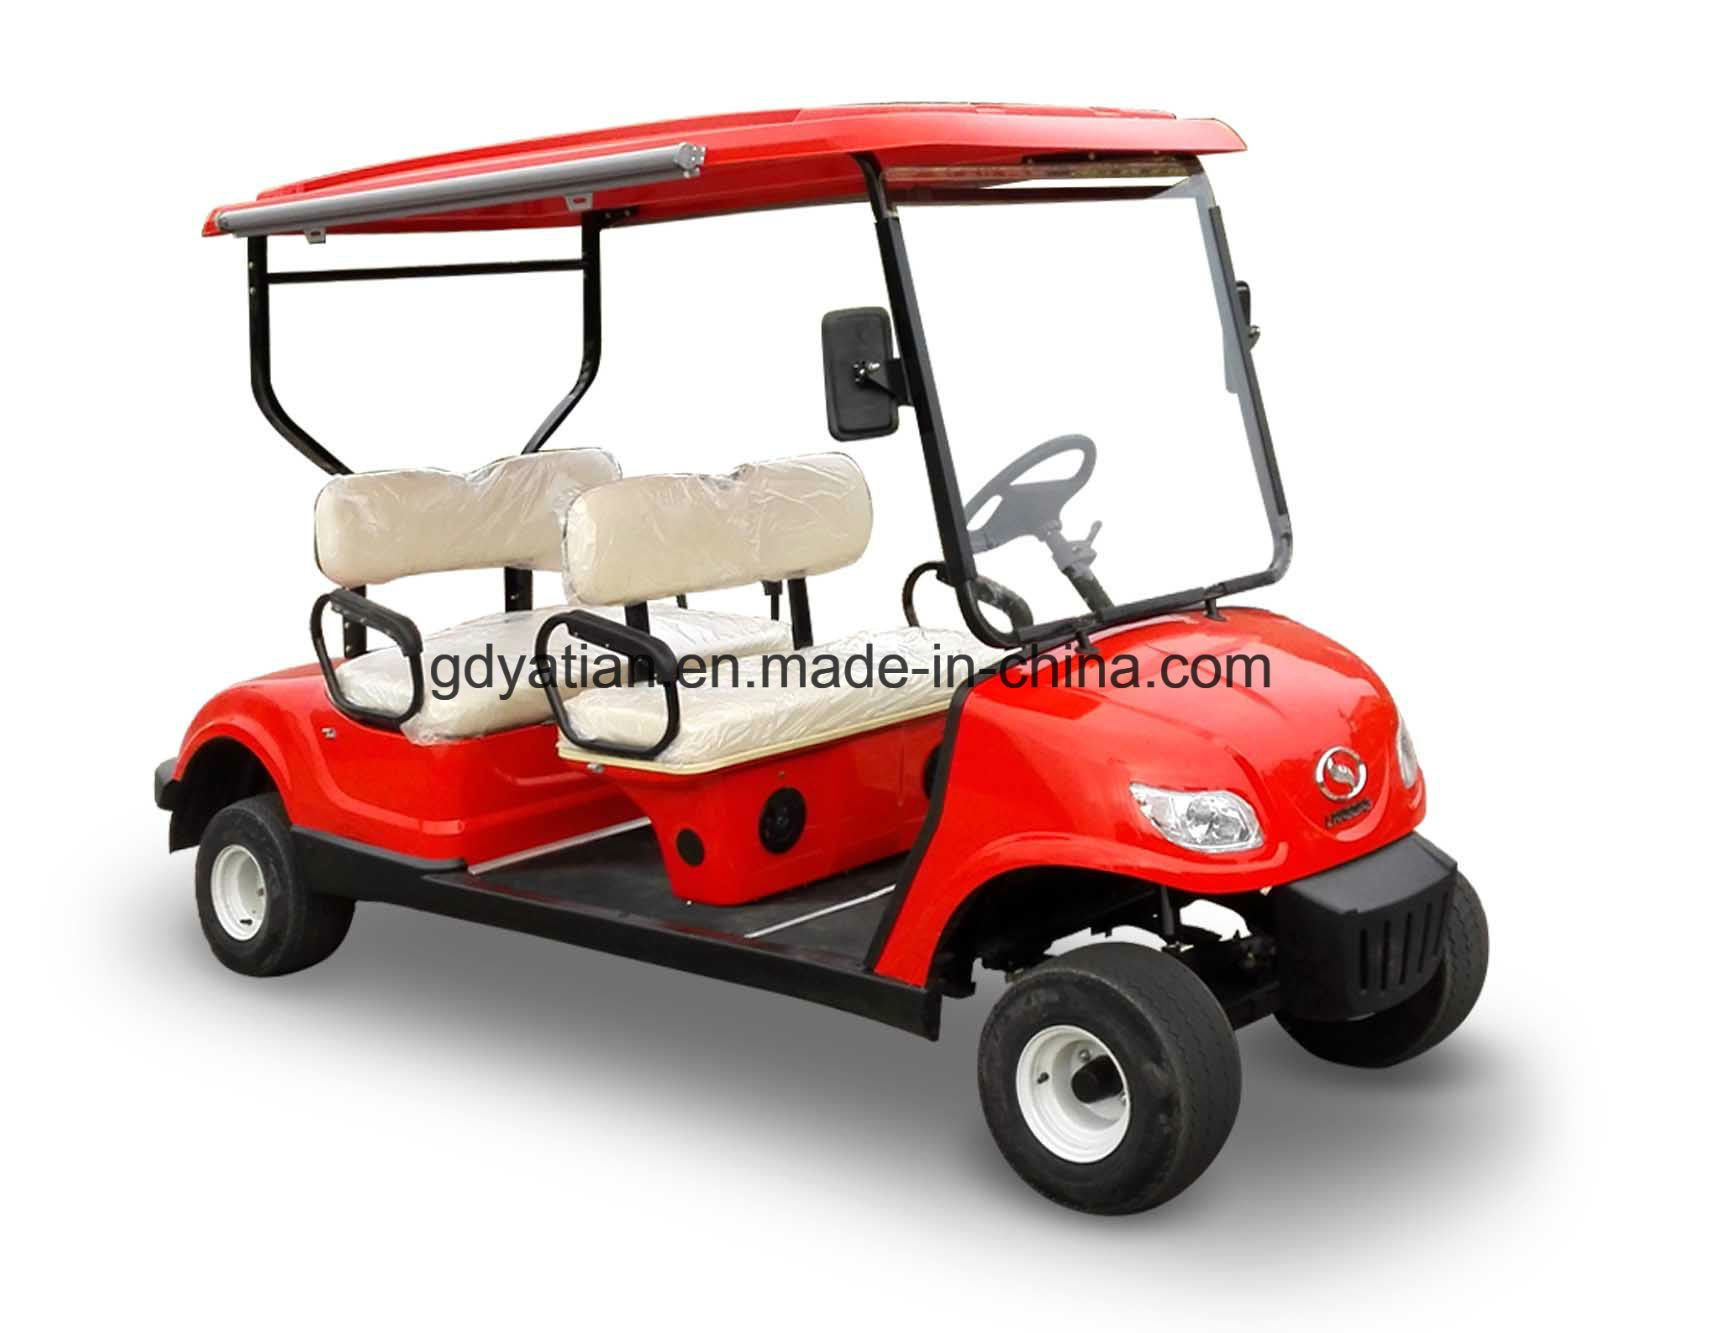 4 Seats Electric Golf Cart Supply For Sale Made In China China 4 Seater Electric Golf Carts Golf Carts